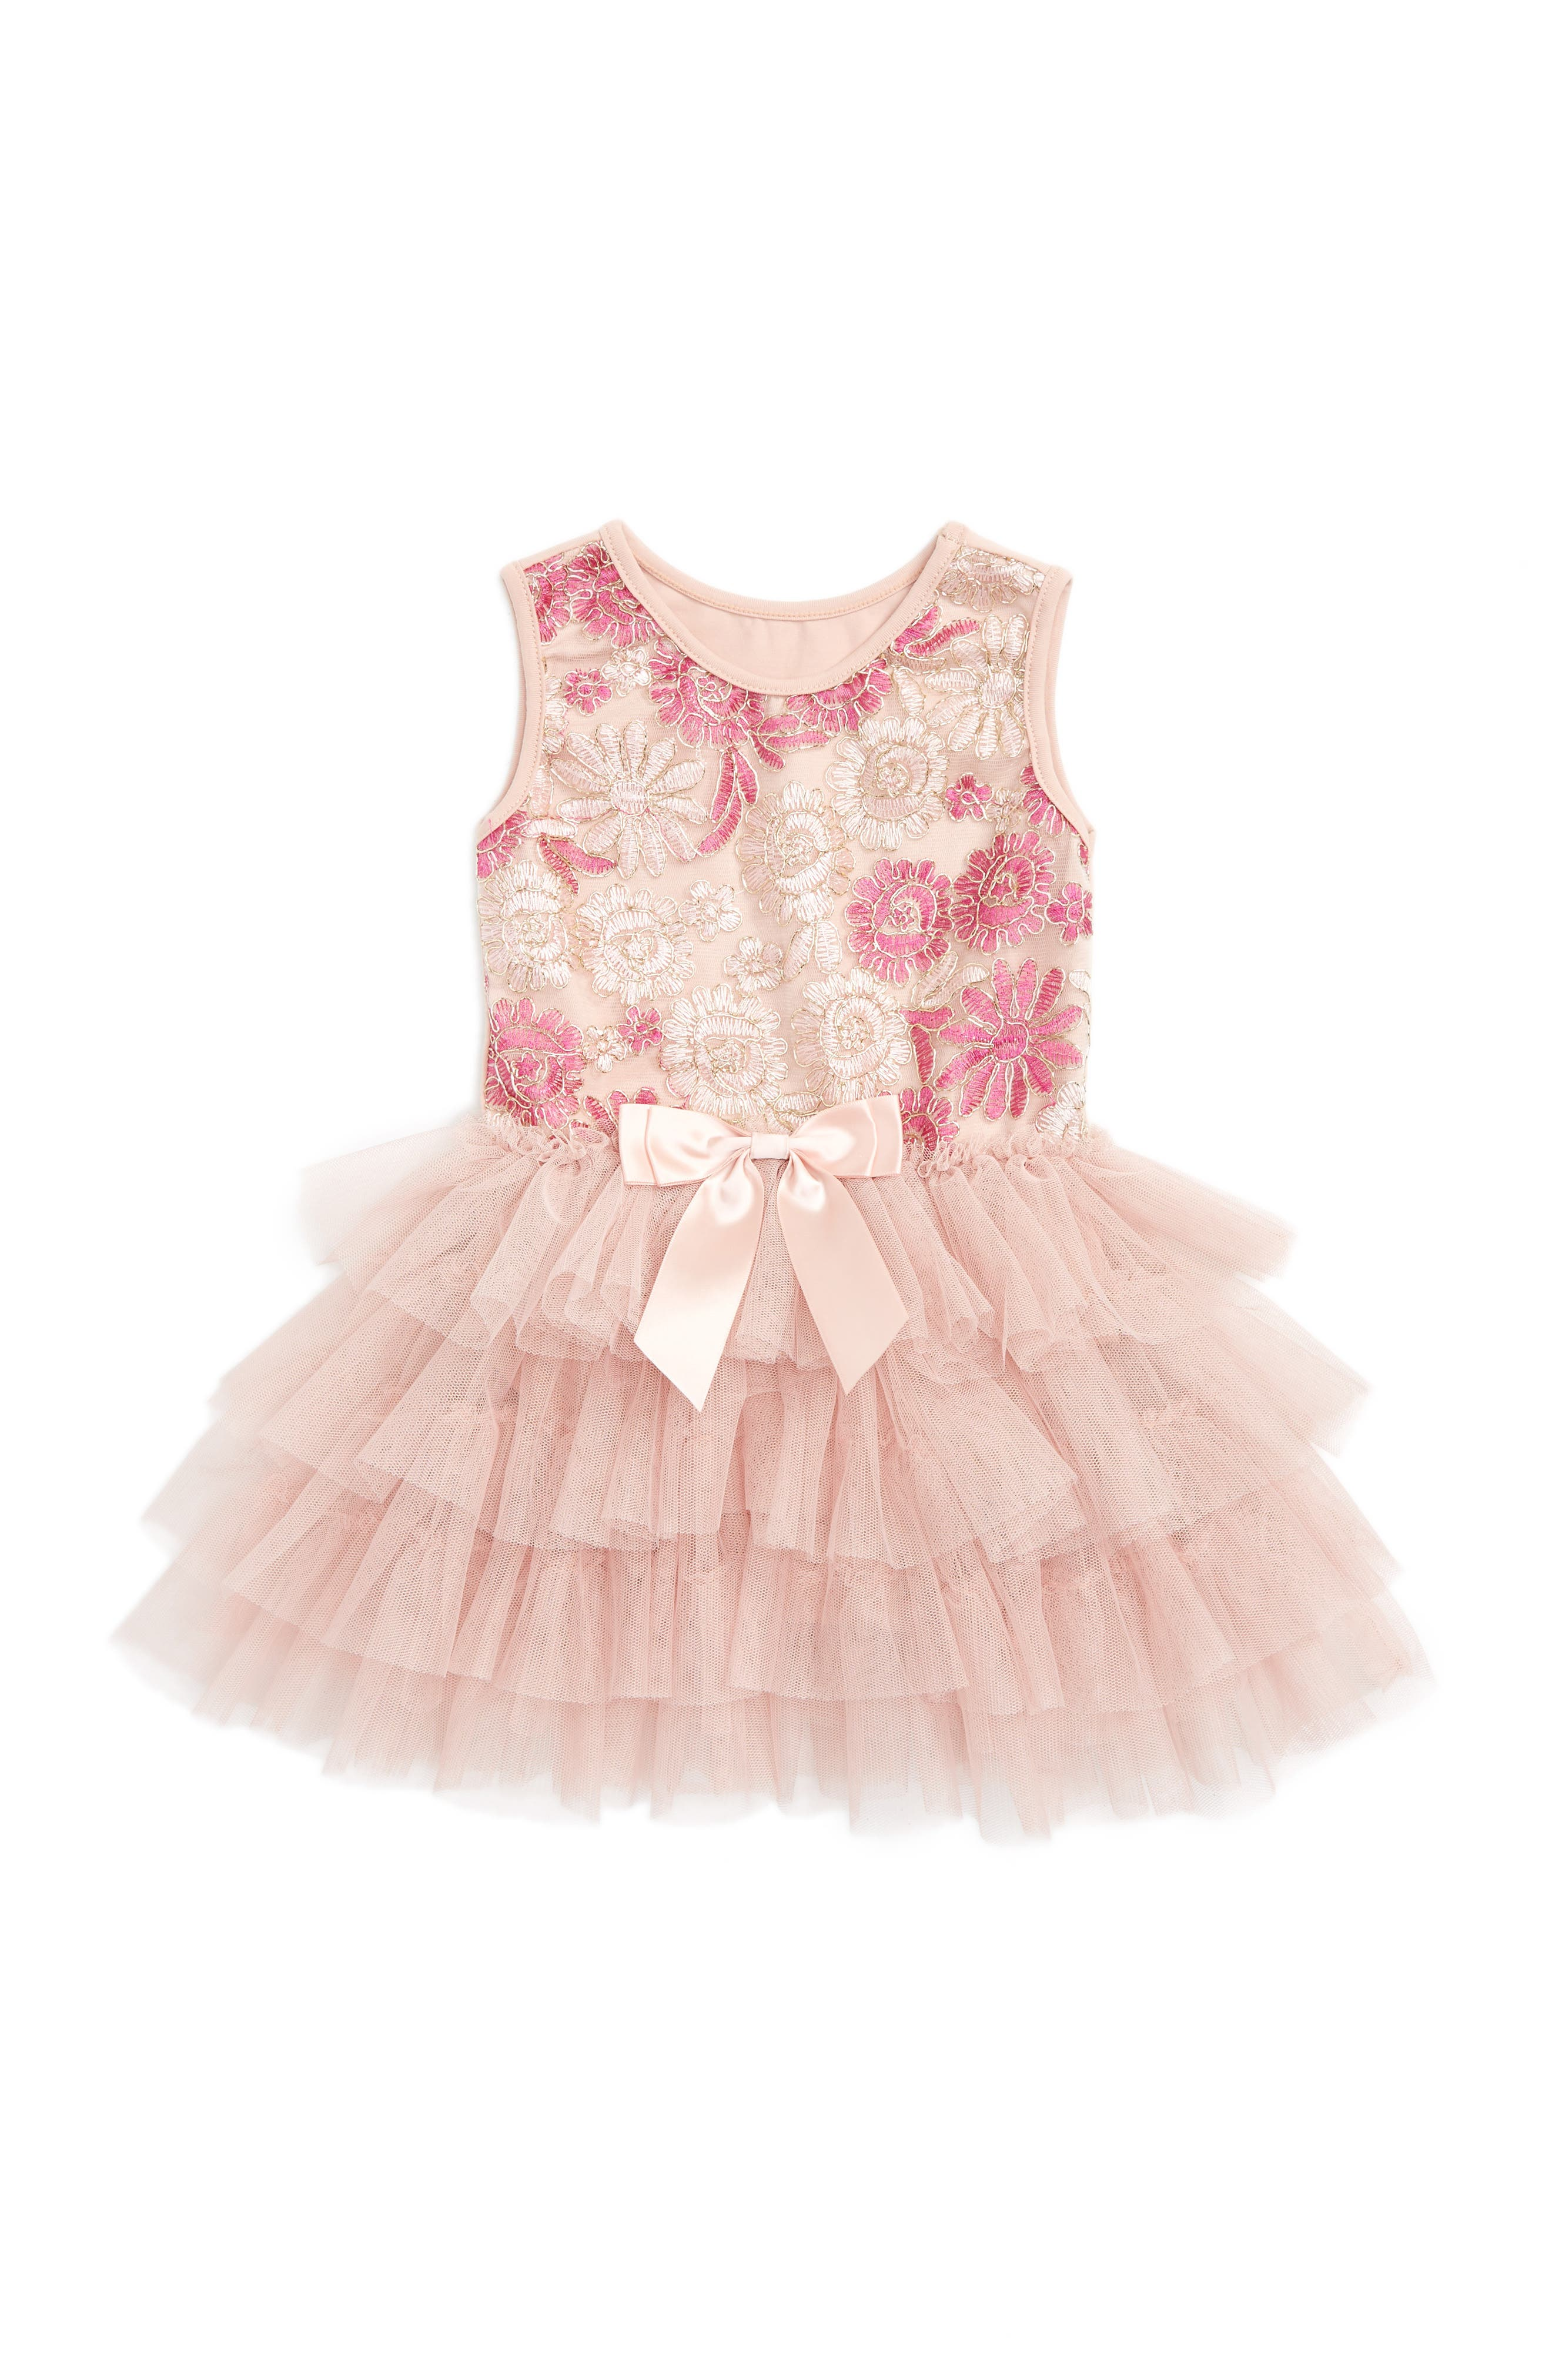 Embroidered Floral Tulle Dress,                             Alternate thumbnail 2, color,                             DUSTY PINK